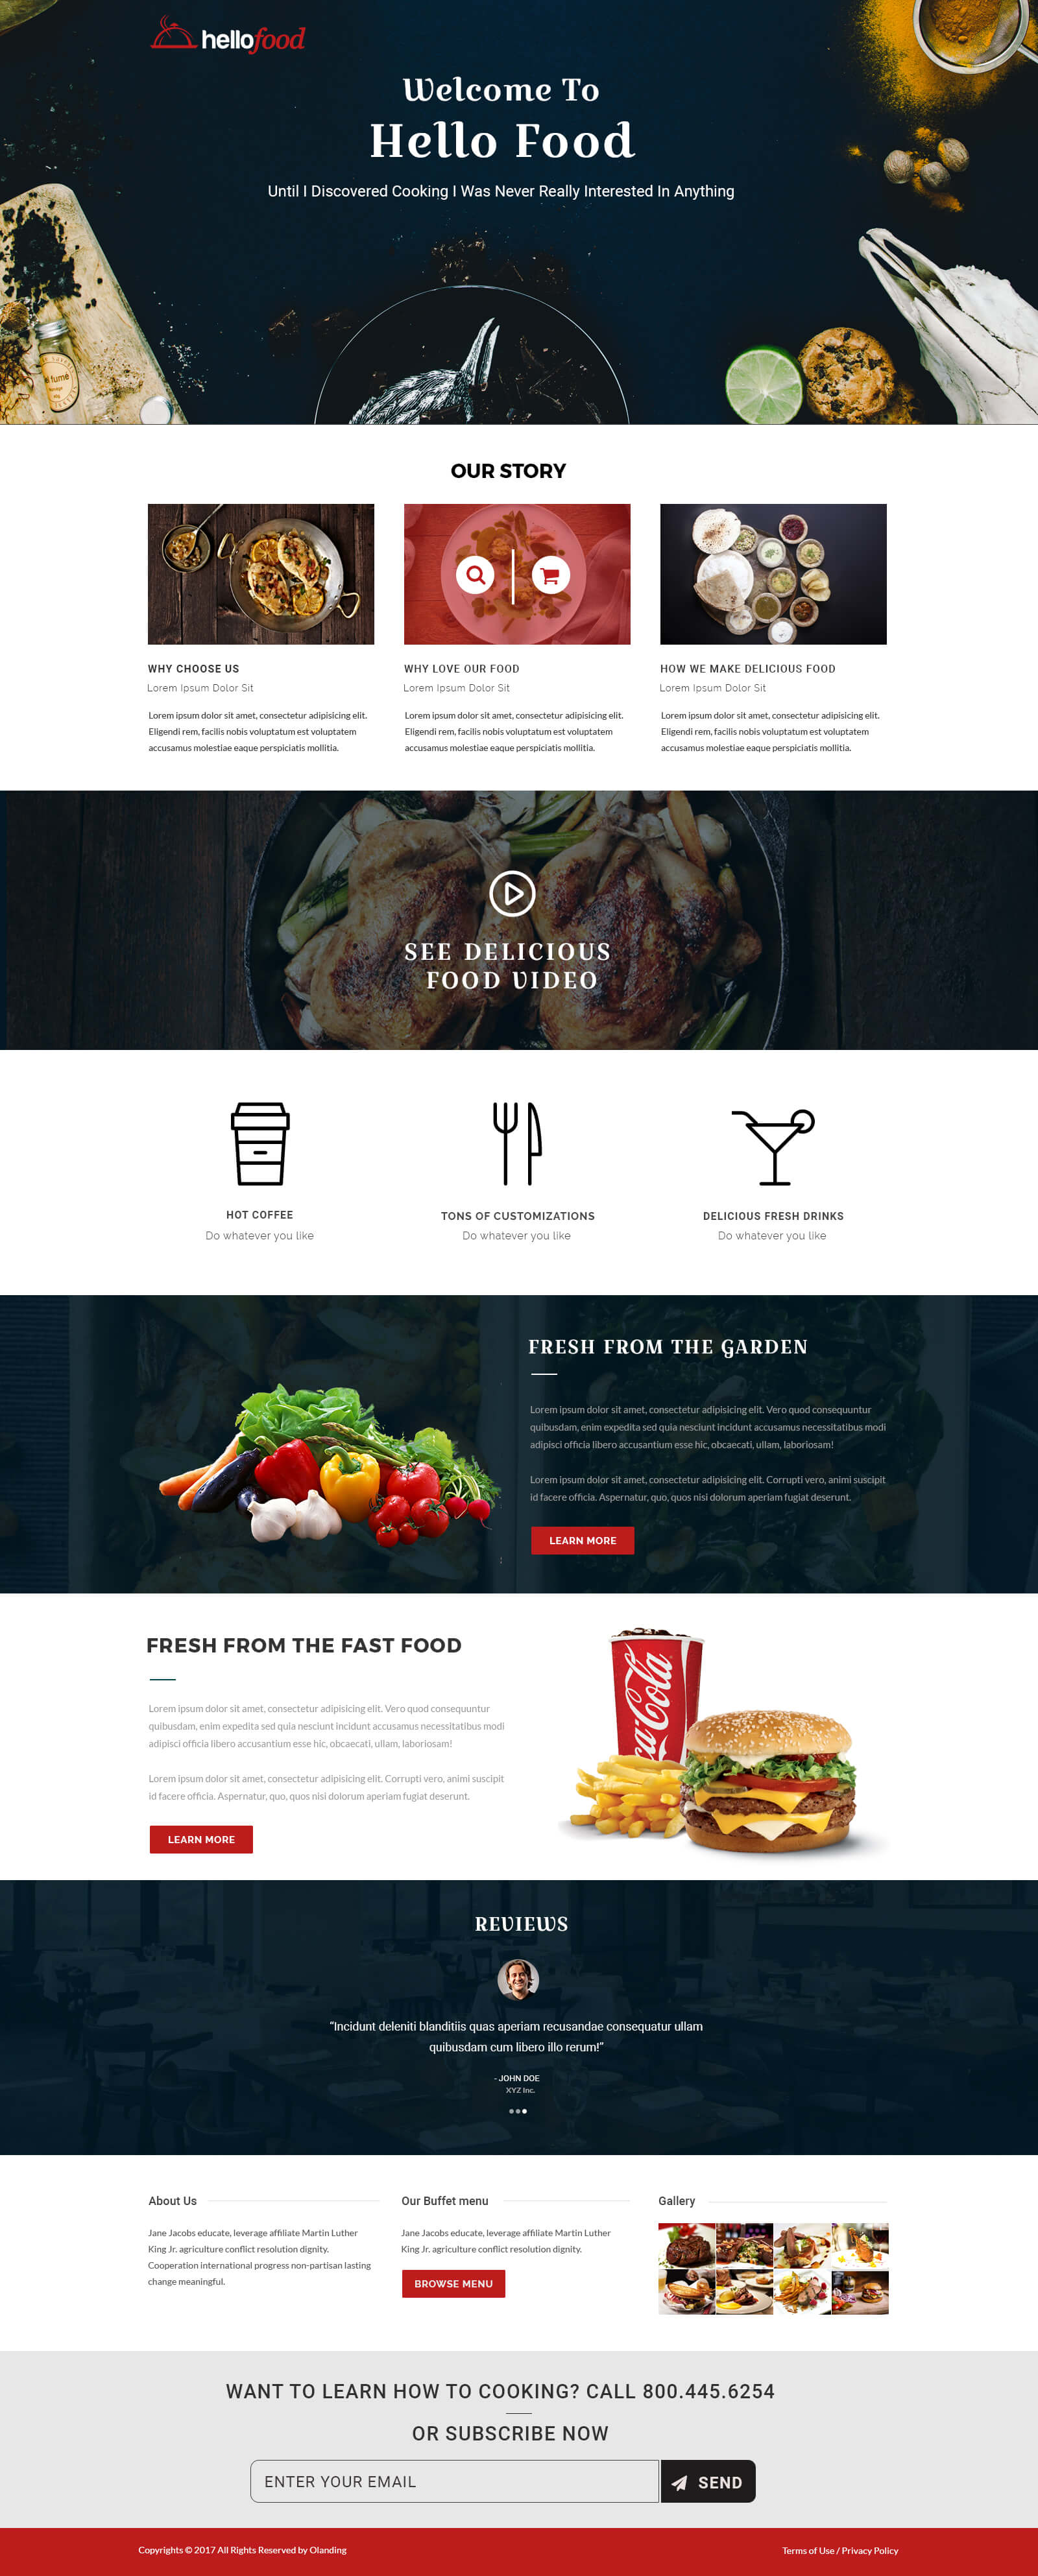 Responsive restaurant and cafe landing page design